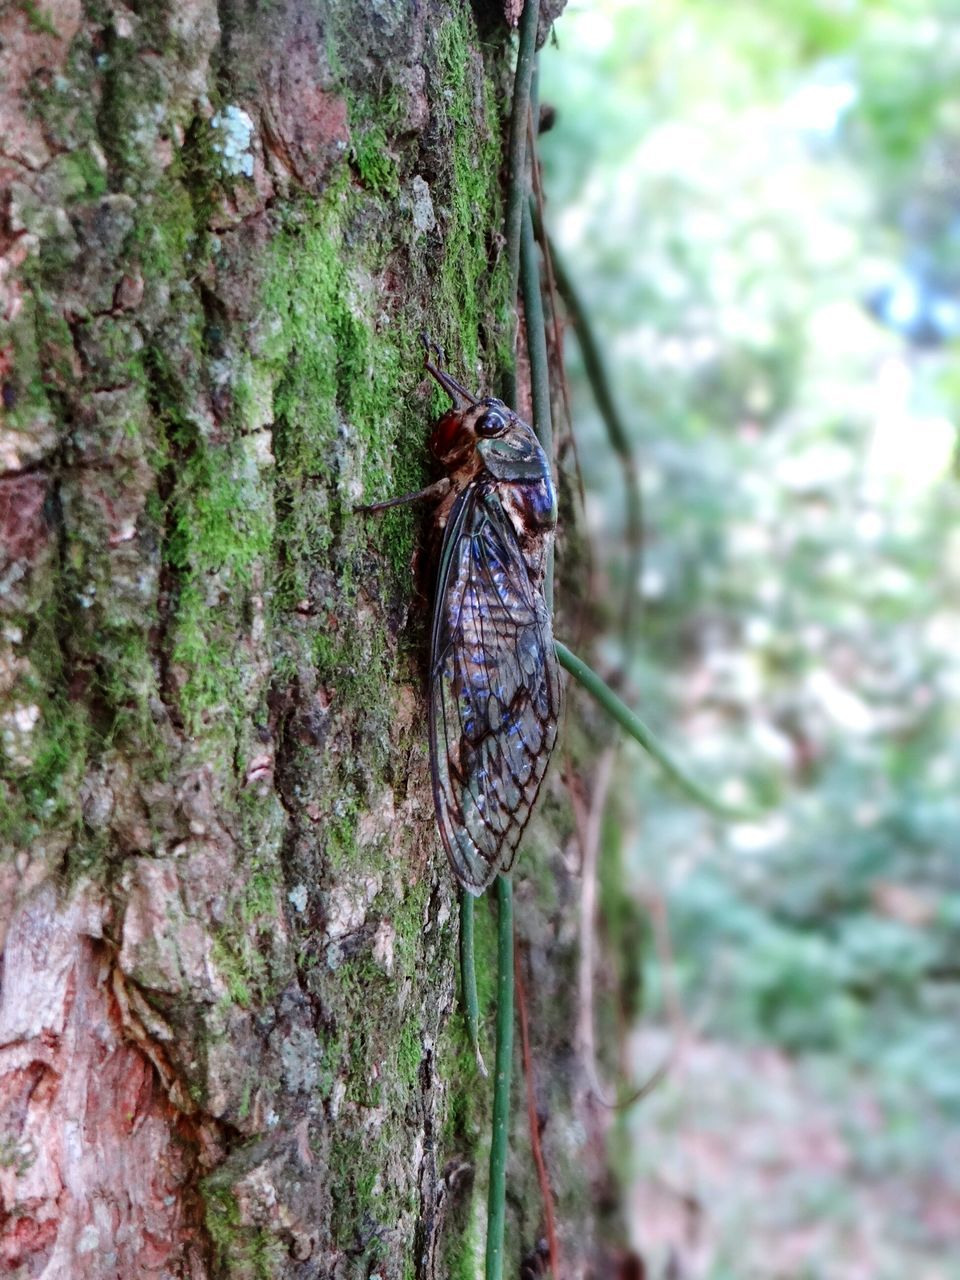 animal themes, one animal, animals in the wild, tree trunk, insect, wildlife, animal wildlife, day, no people, nature, tree, close-up, butterfly - insect, growth, outdoors, full length, fragility